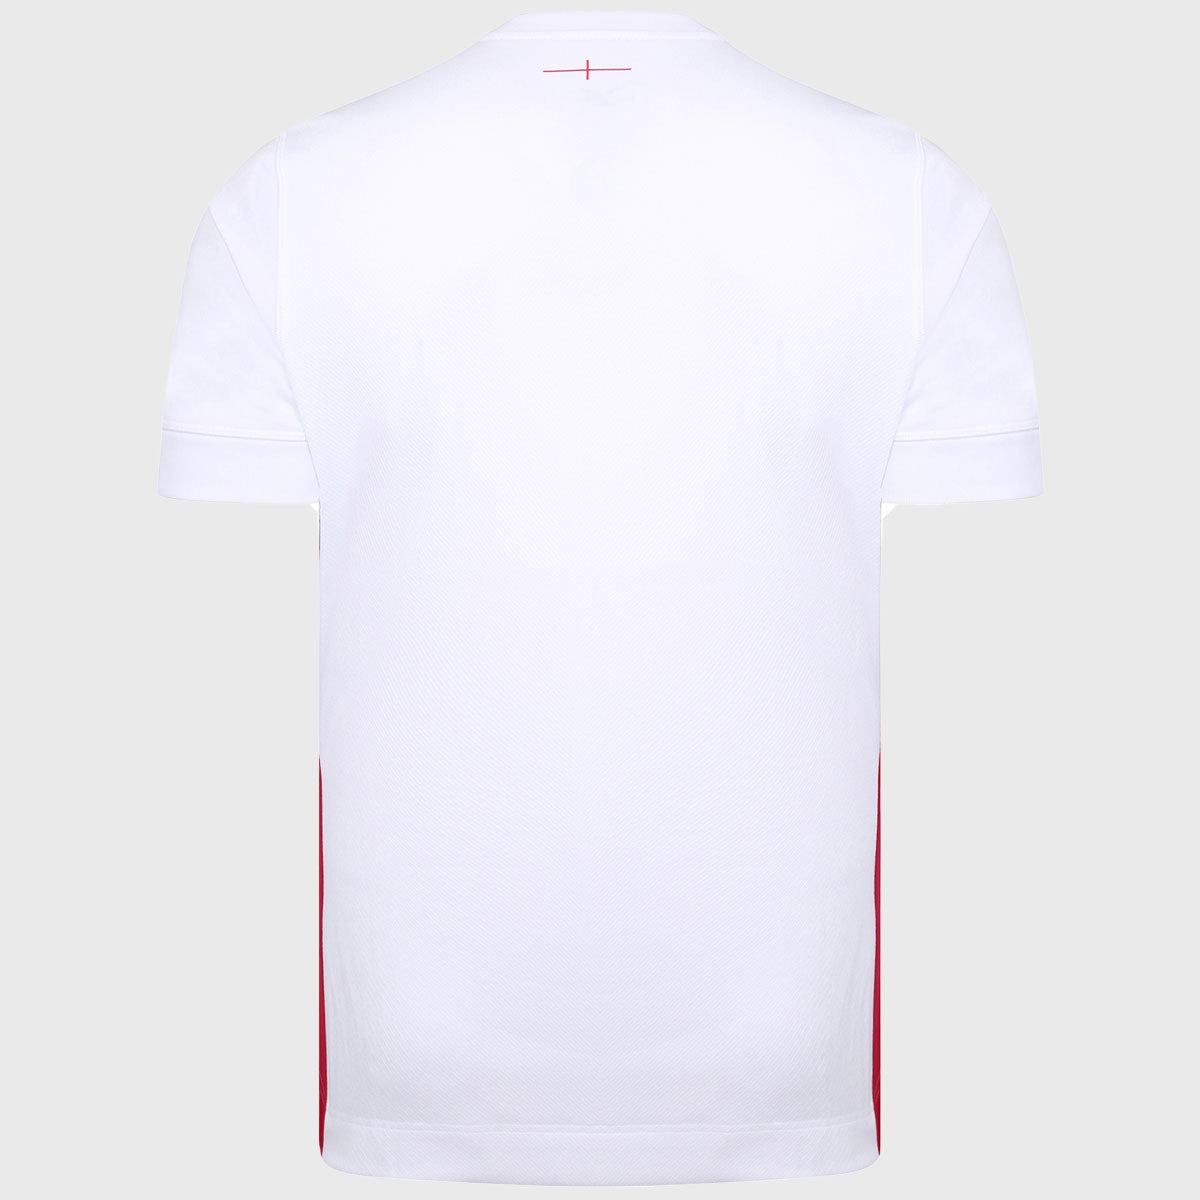 England Home Pro Rugby Shirt 2020/21 - First XV rugbystuff.com